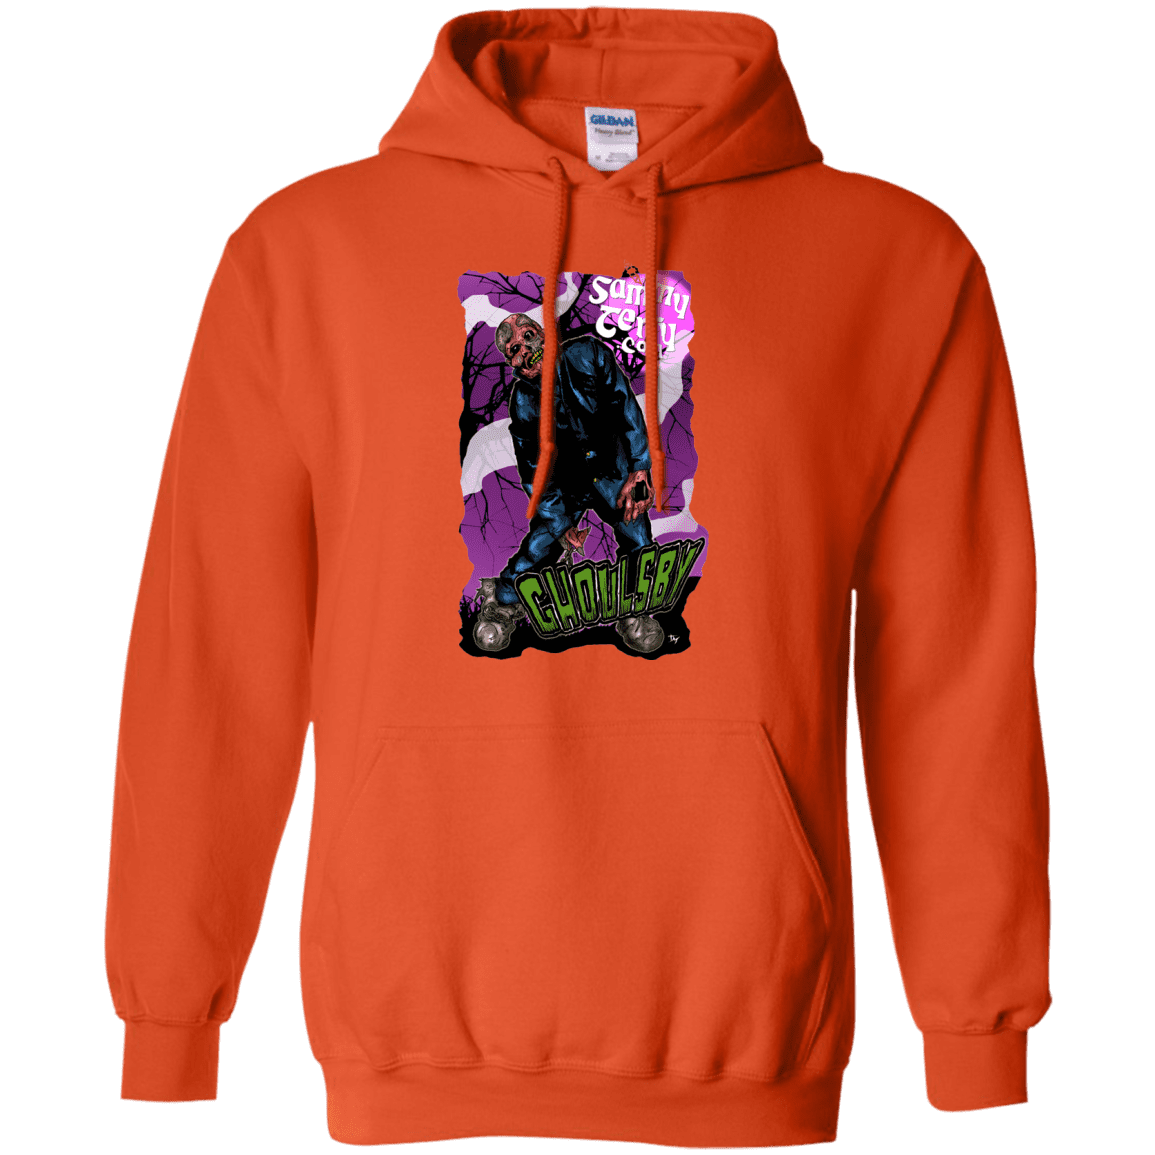 full body hoodie ghoulsby full body hoodie asstd colors sammy terry 5715